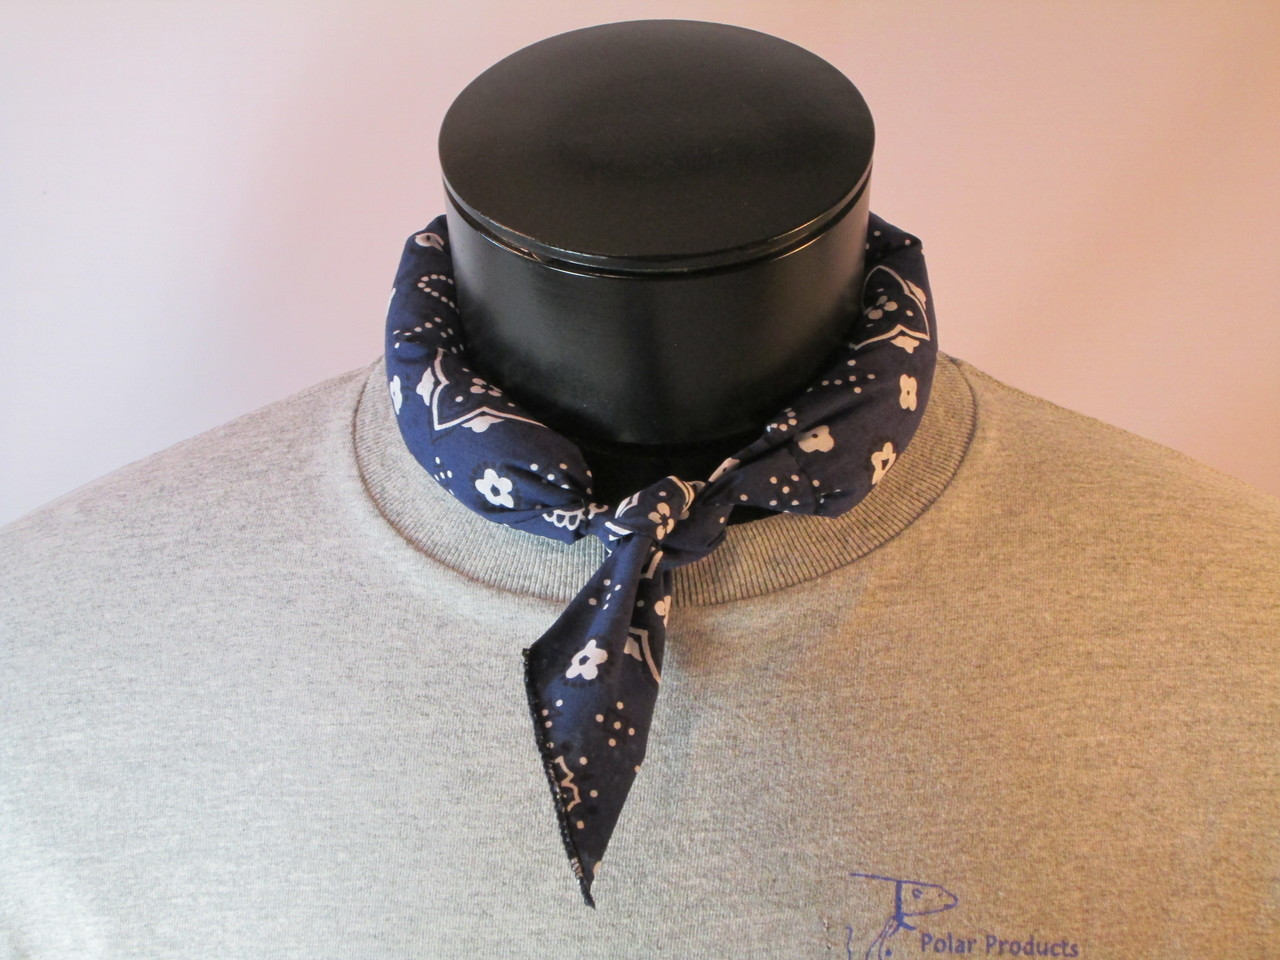 Polar Cooling Tie in blue bandanna print.